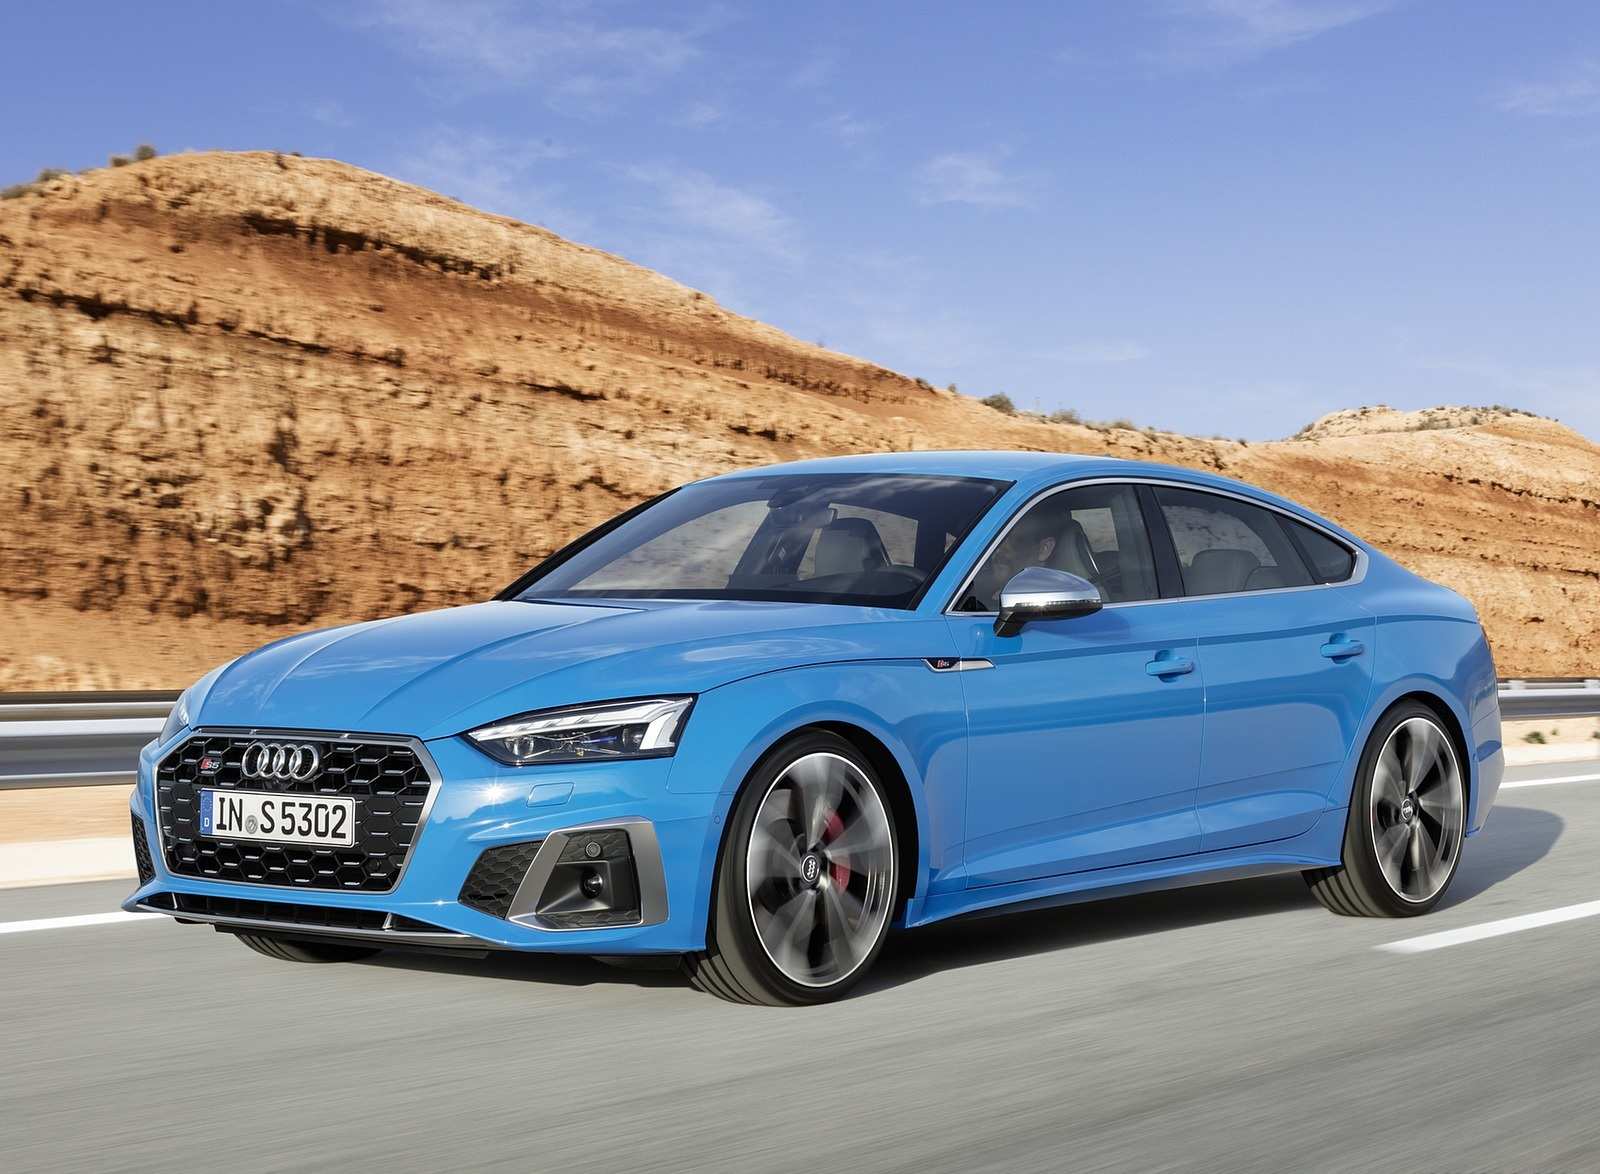 2020 Audi S5 Sportback TDI (Color: Turbo Blue) Front Three-Quarter Wallpapers (4)